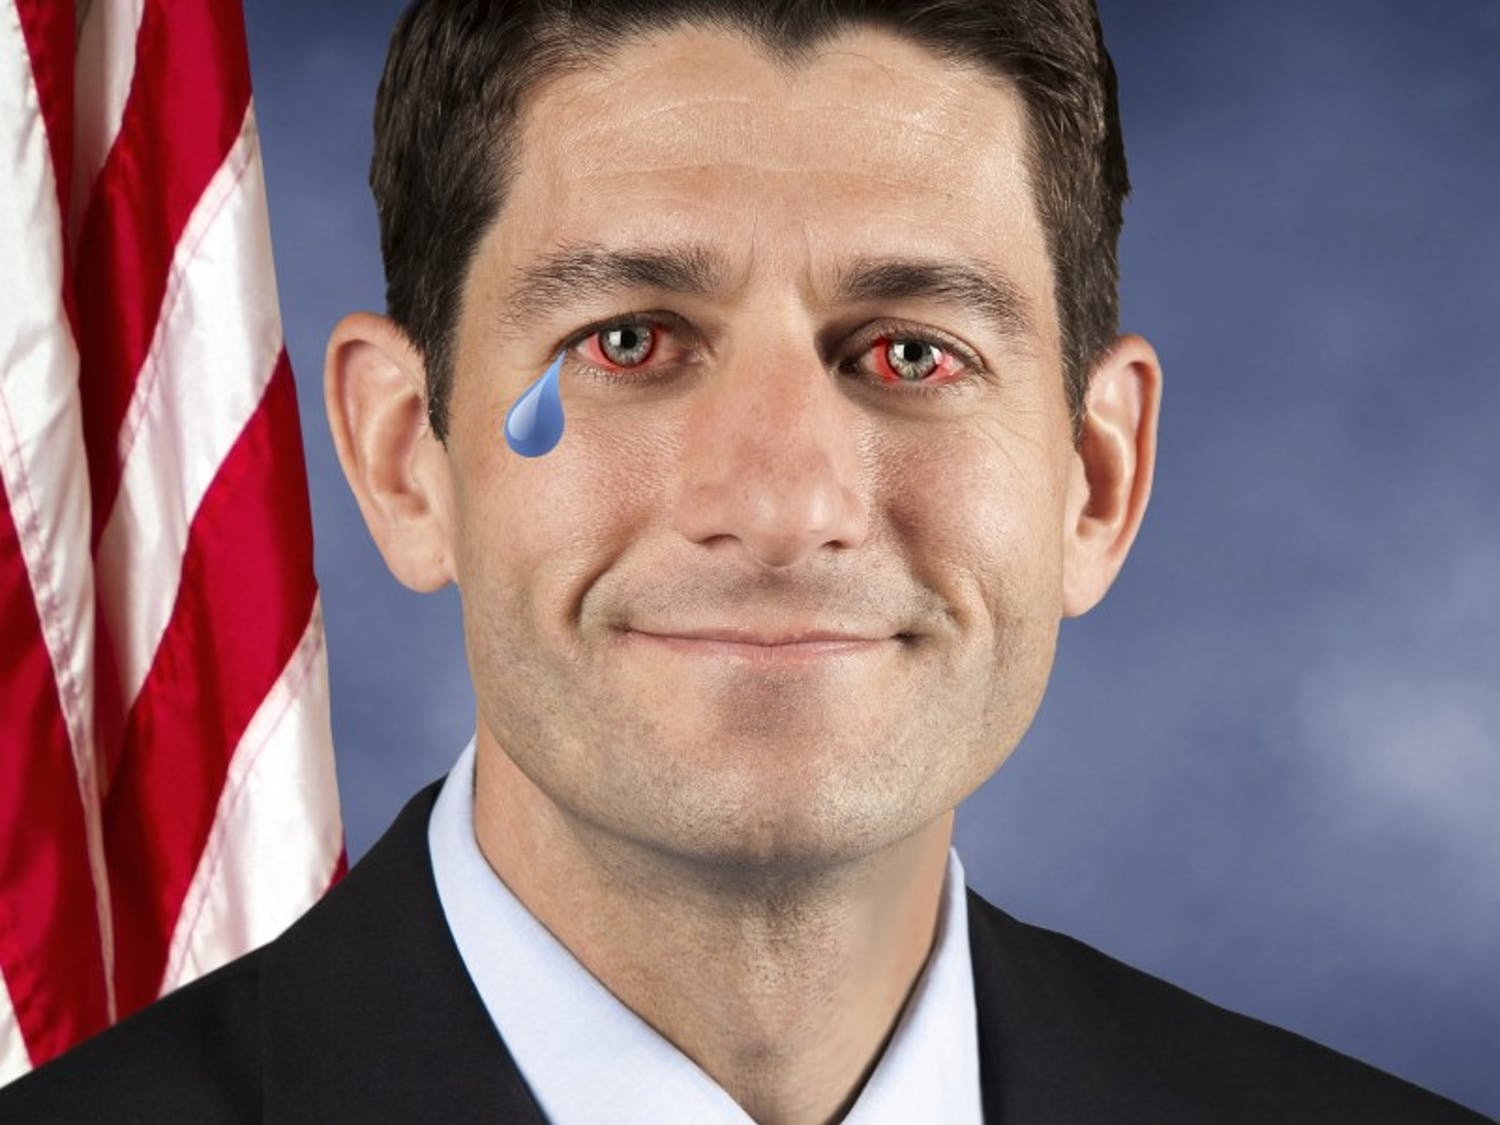 Paul Ryan isn't crying. He doesn't know why you would think that. You jerk.